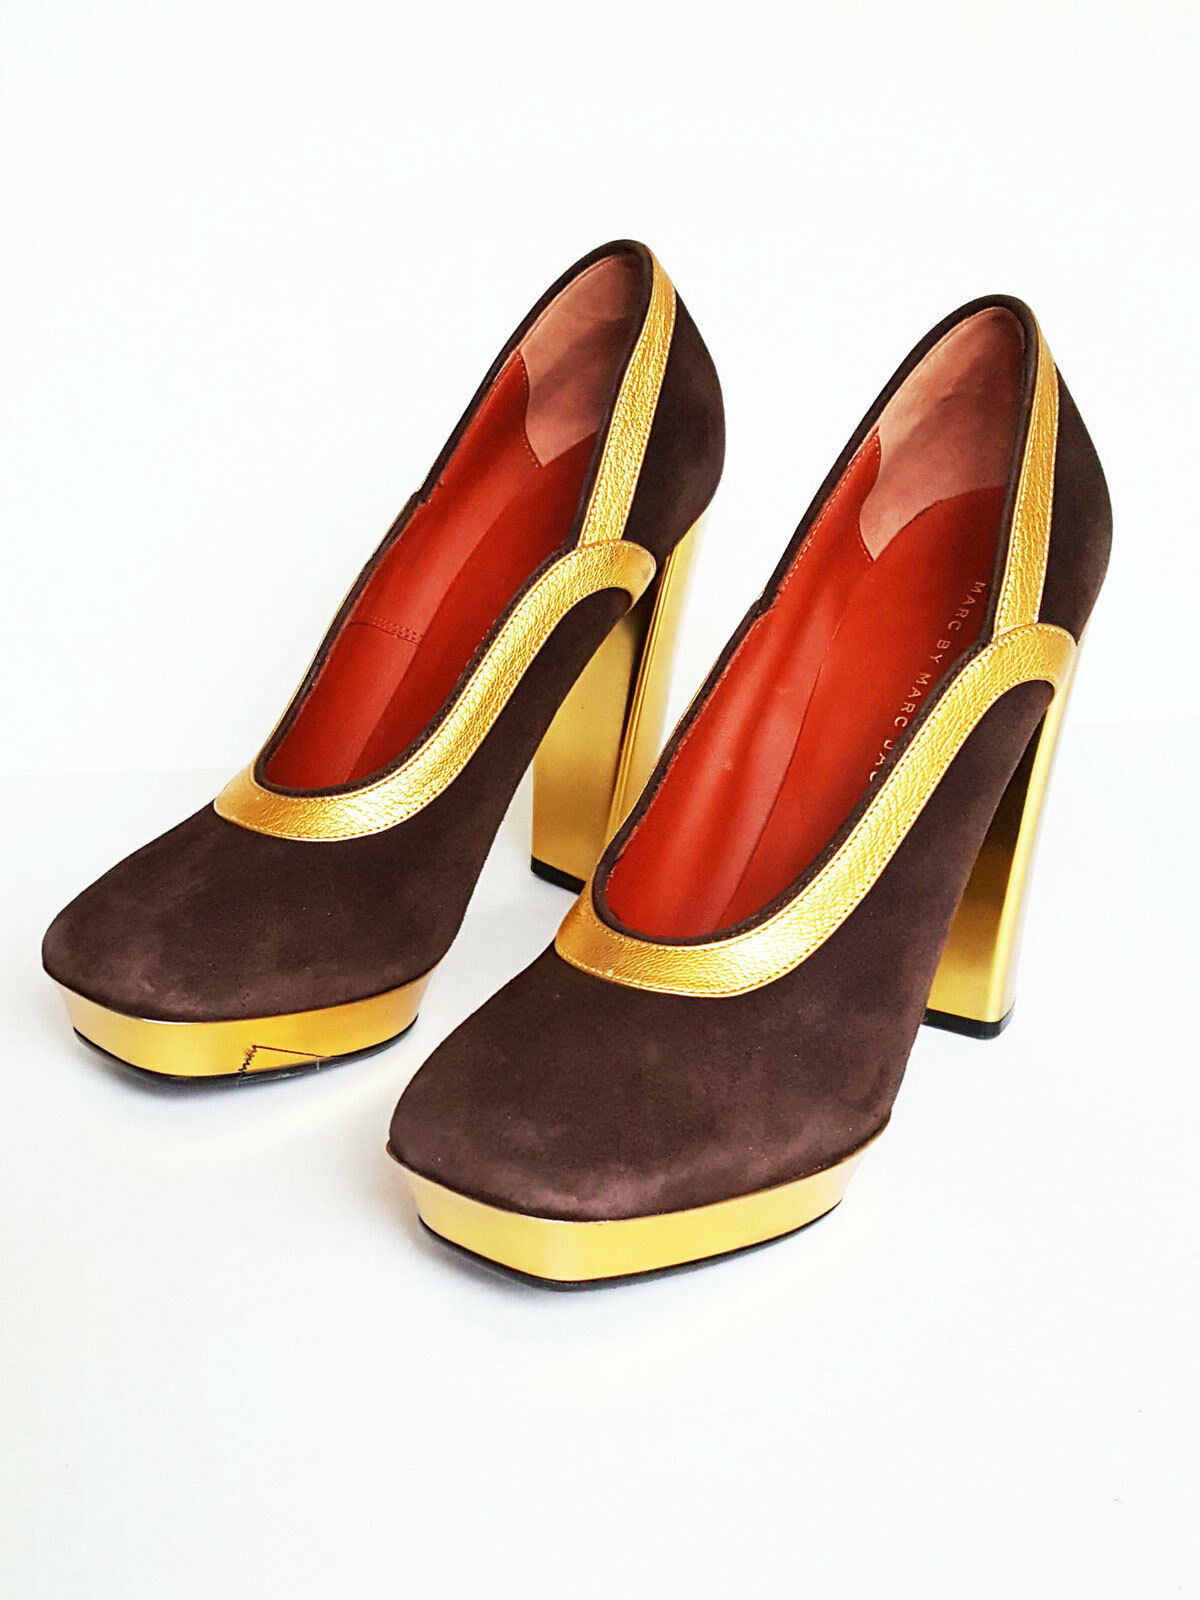 Primary image for Marc by Marc Jacobs heels